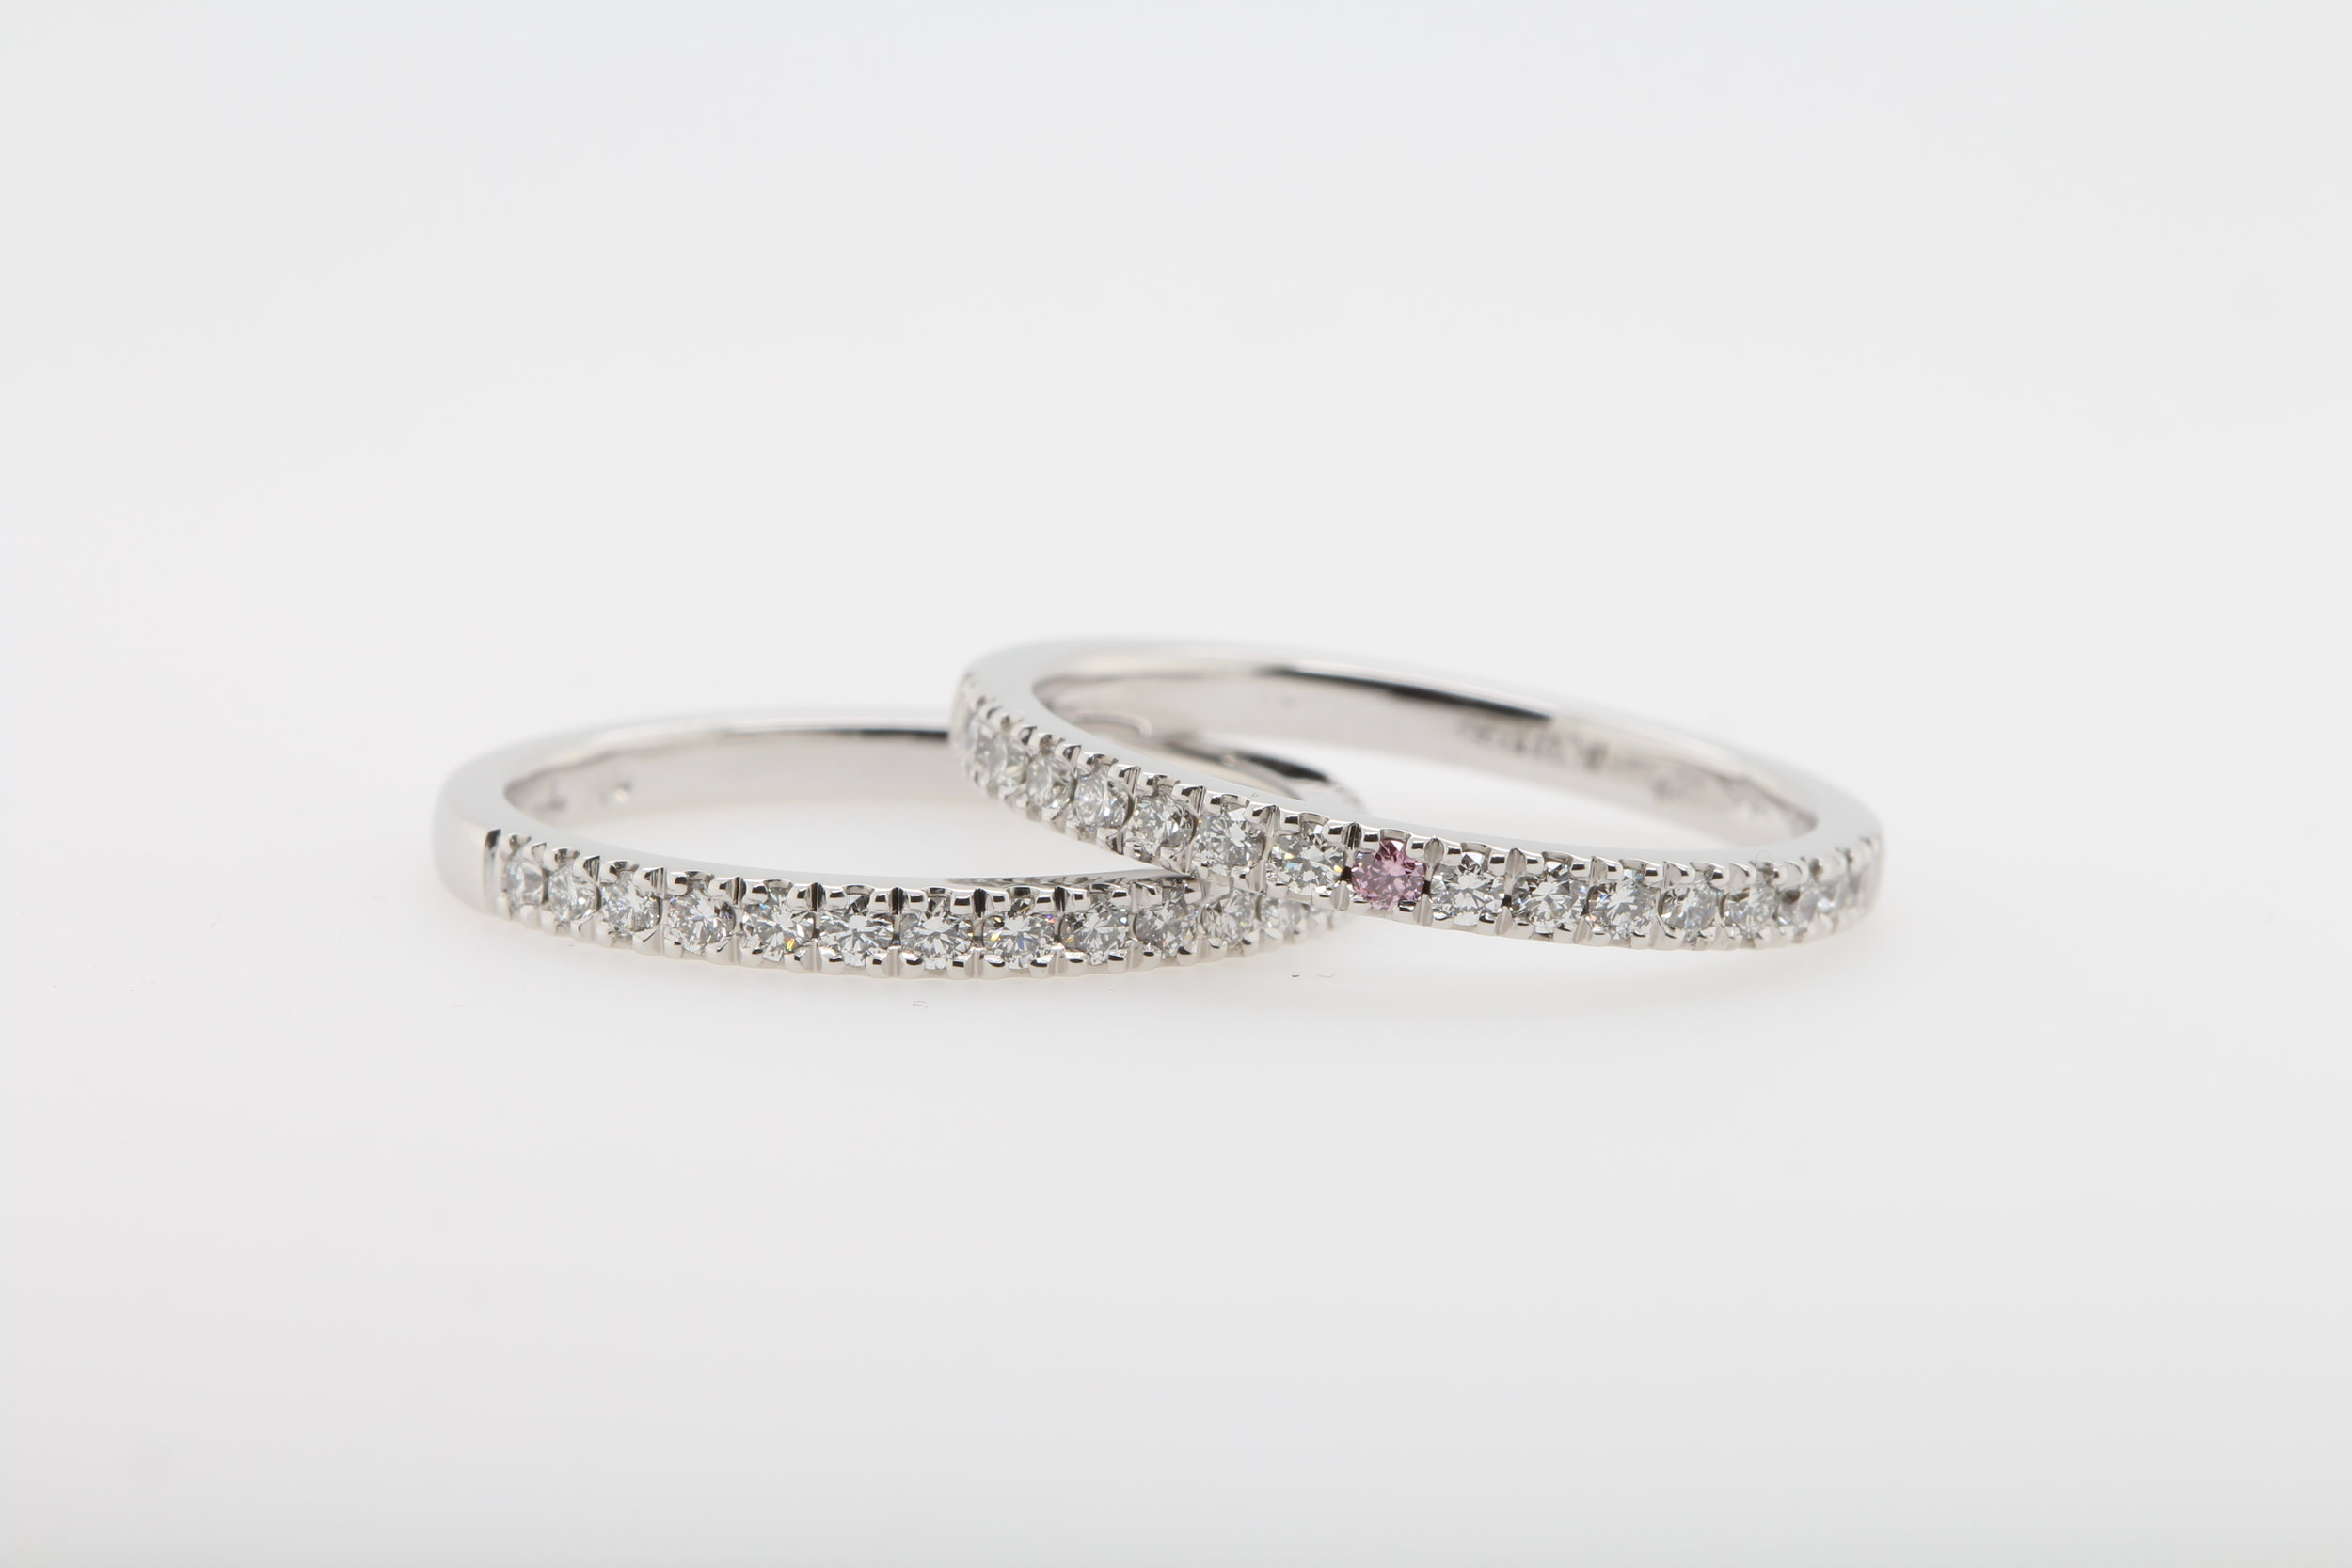 Renee's wedding and eternity ring features a beautiful pink diamond in her eternity ring, to distinguish the two matching pieces.